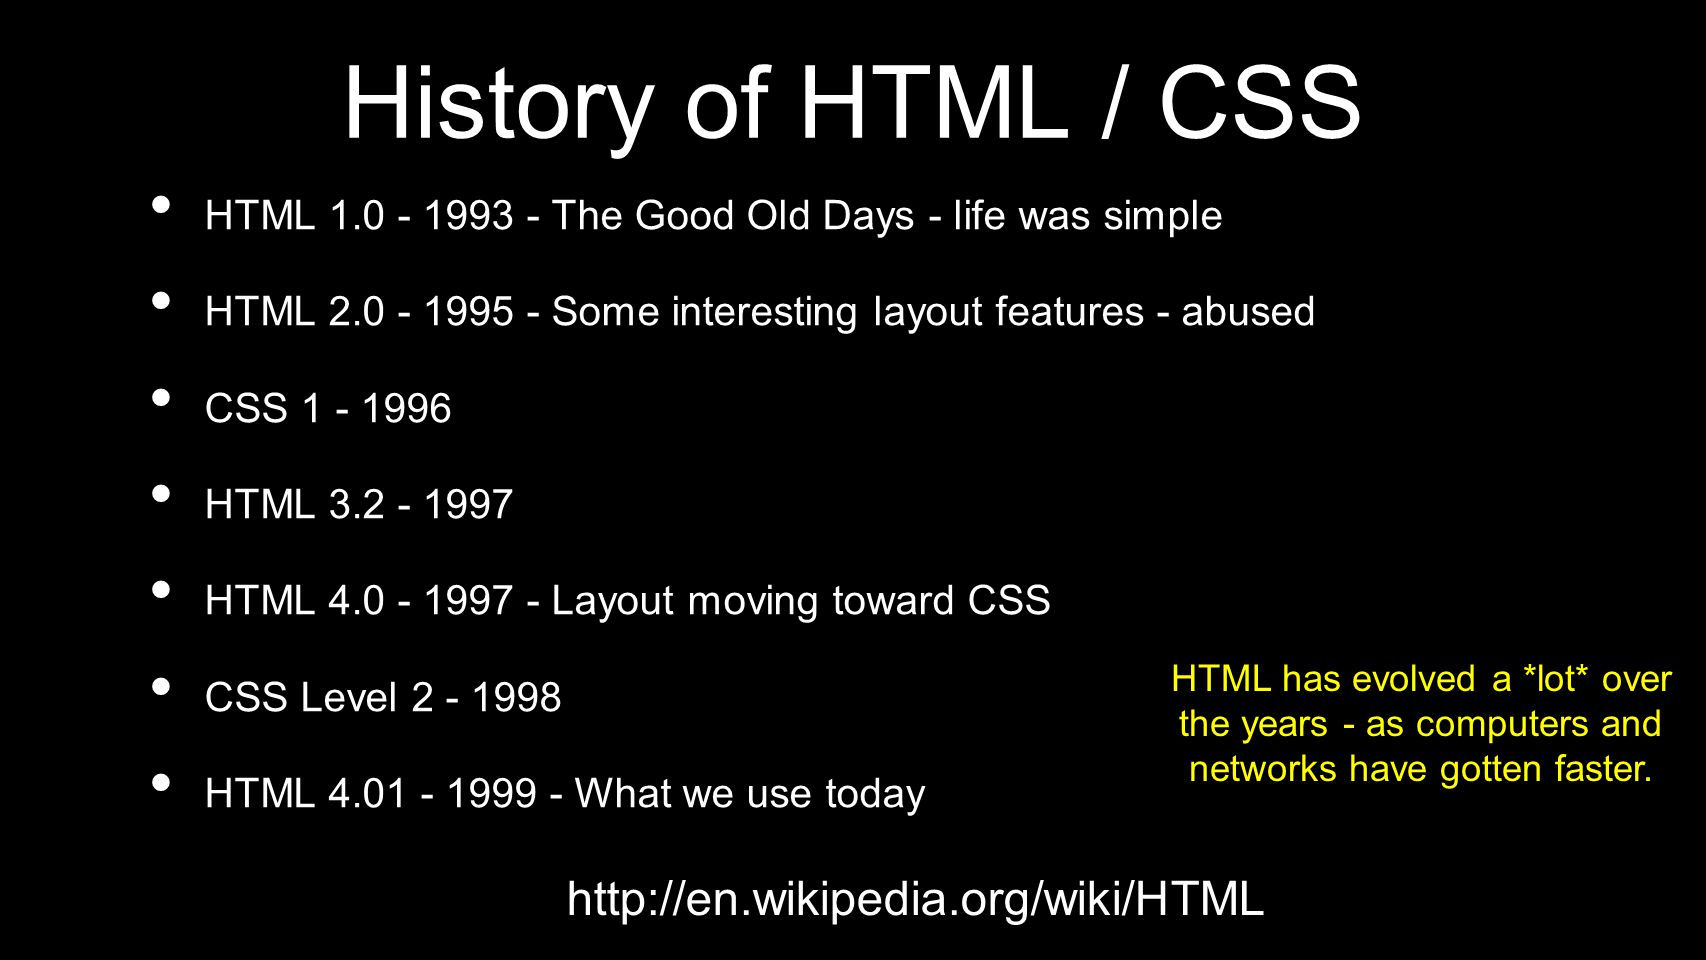 History of HTML / CSS HTML 1.0 - 1993 - The Good Old Days - life was simple HTML 2.0 - 1995 - Some interesting layout features - abused CSS 1 - 1996 HTML 3.2 - 1997 HTML 4.0 - 1997 - Layout moving toward CSS CSS Level 2 - 1998 HTML 4.01 - 1999 - What we use today HTML has evolved a *lot* over the years - as computers and networks have gotten faster.